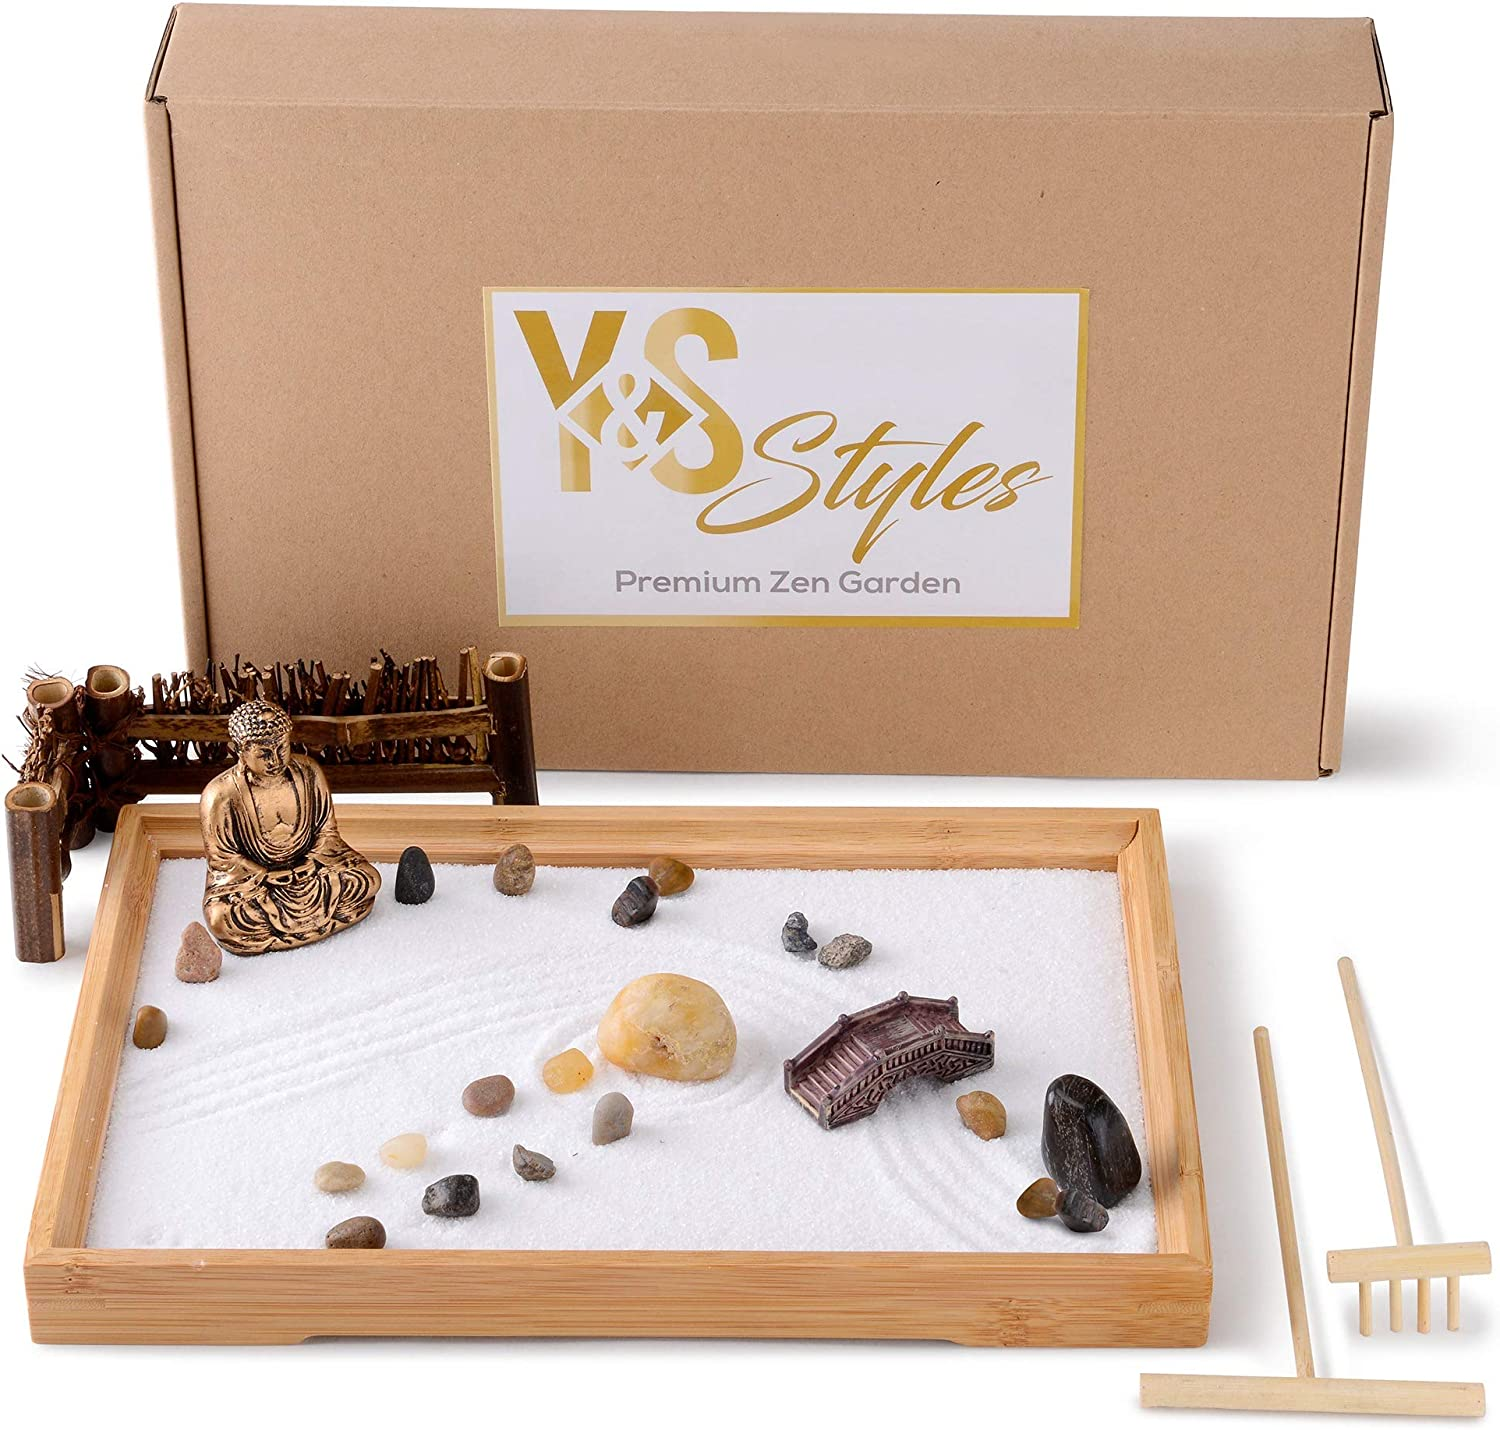 Y&S Styles Zen Garden - Sensory Toys for Home Decor - Fidget Toys for Adults- Decorative Trays for Coffee Table - Japanese Decor with Buddha Statue - Meditation Table for Office Decor